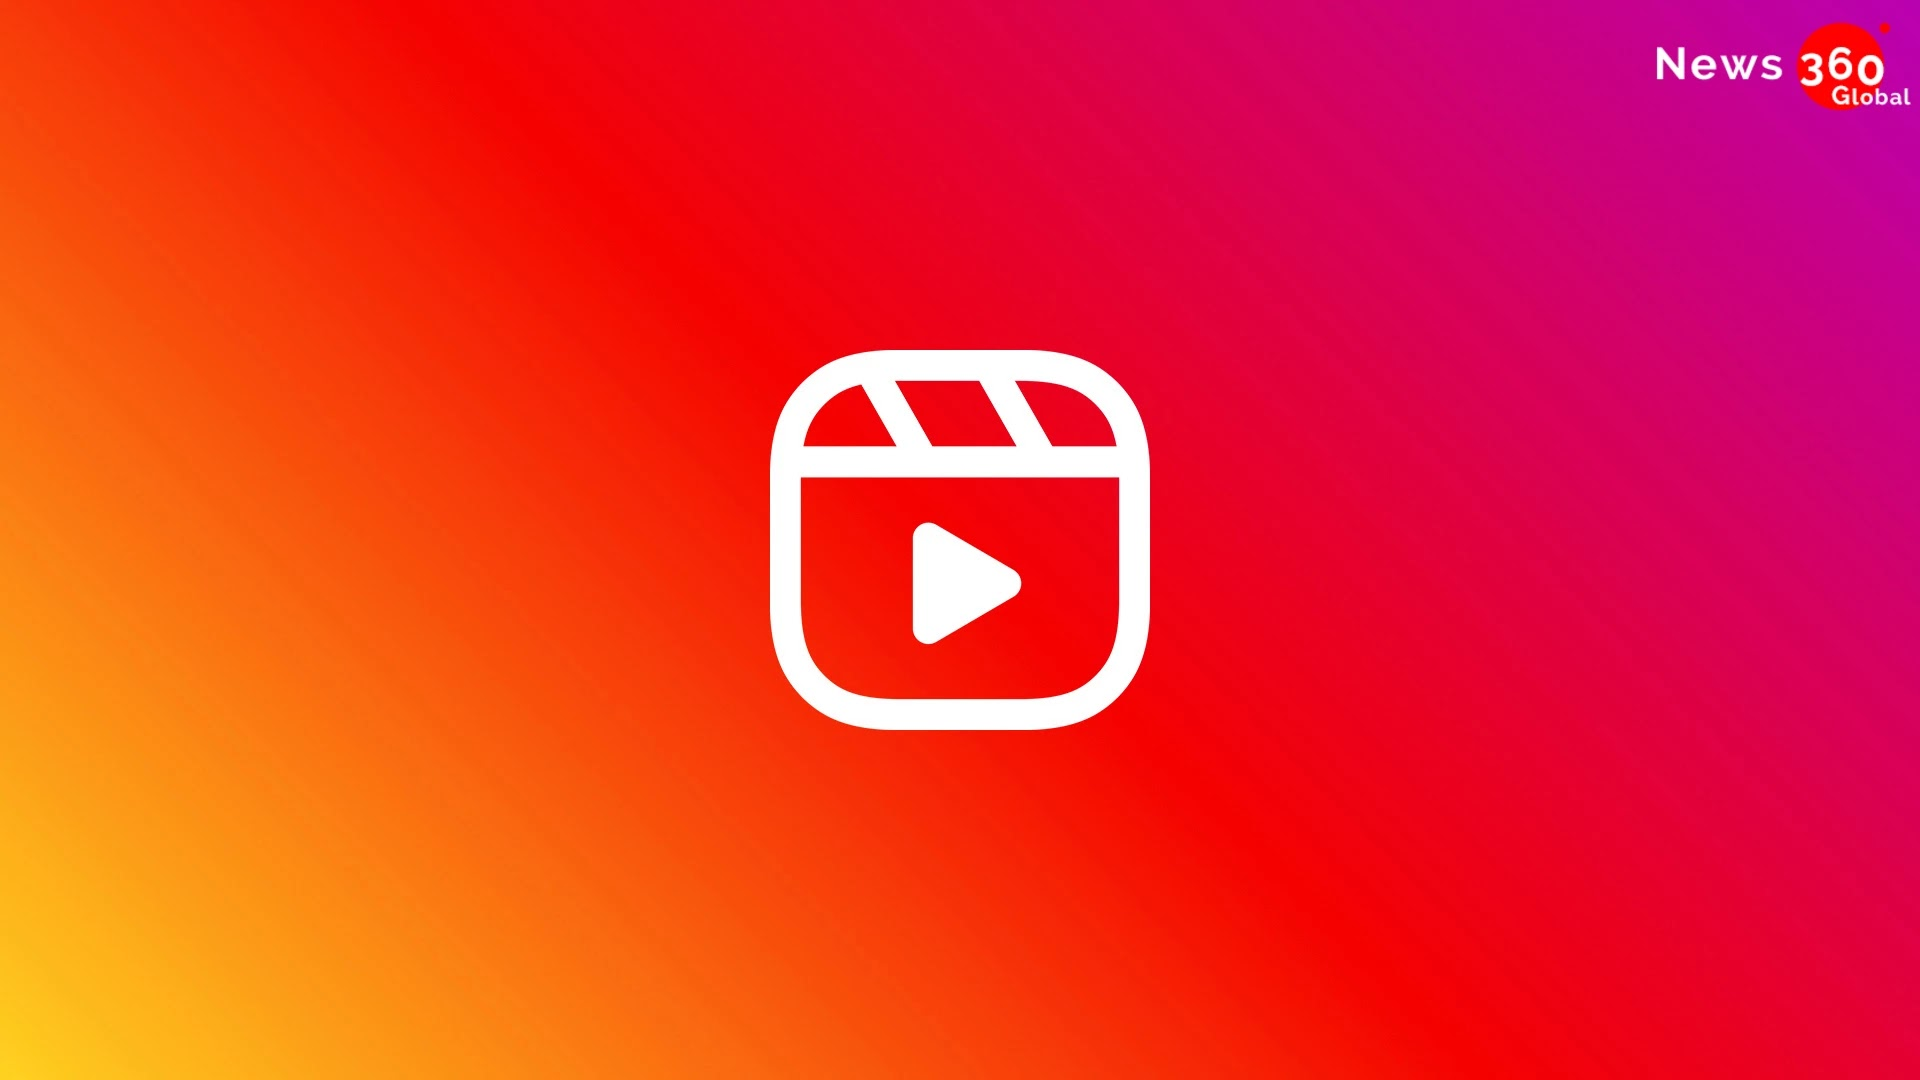 INSTAGRAM OFFICIALS - You Can Earn Money With Reels. How to Monetize Reels?